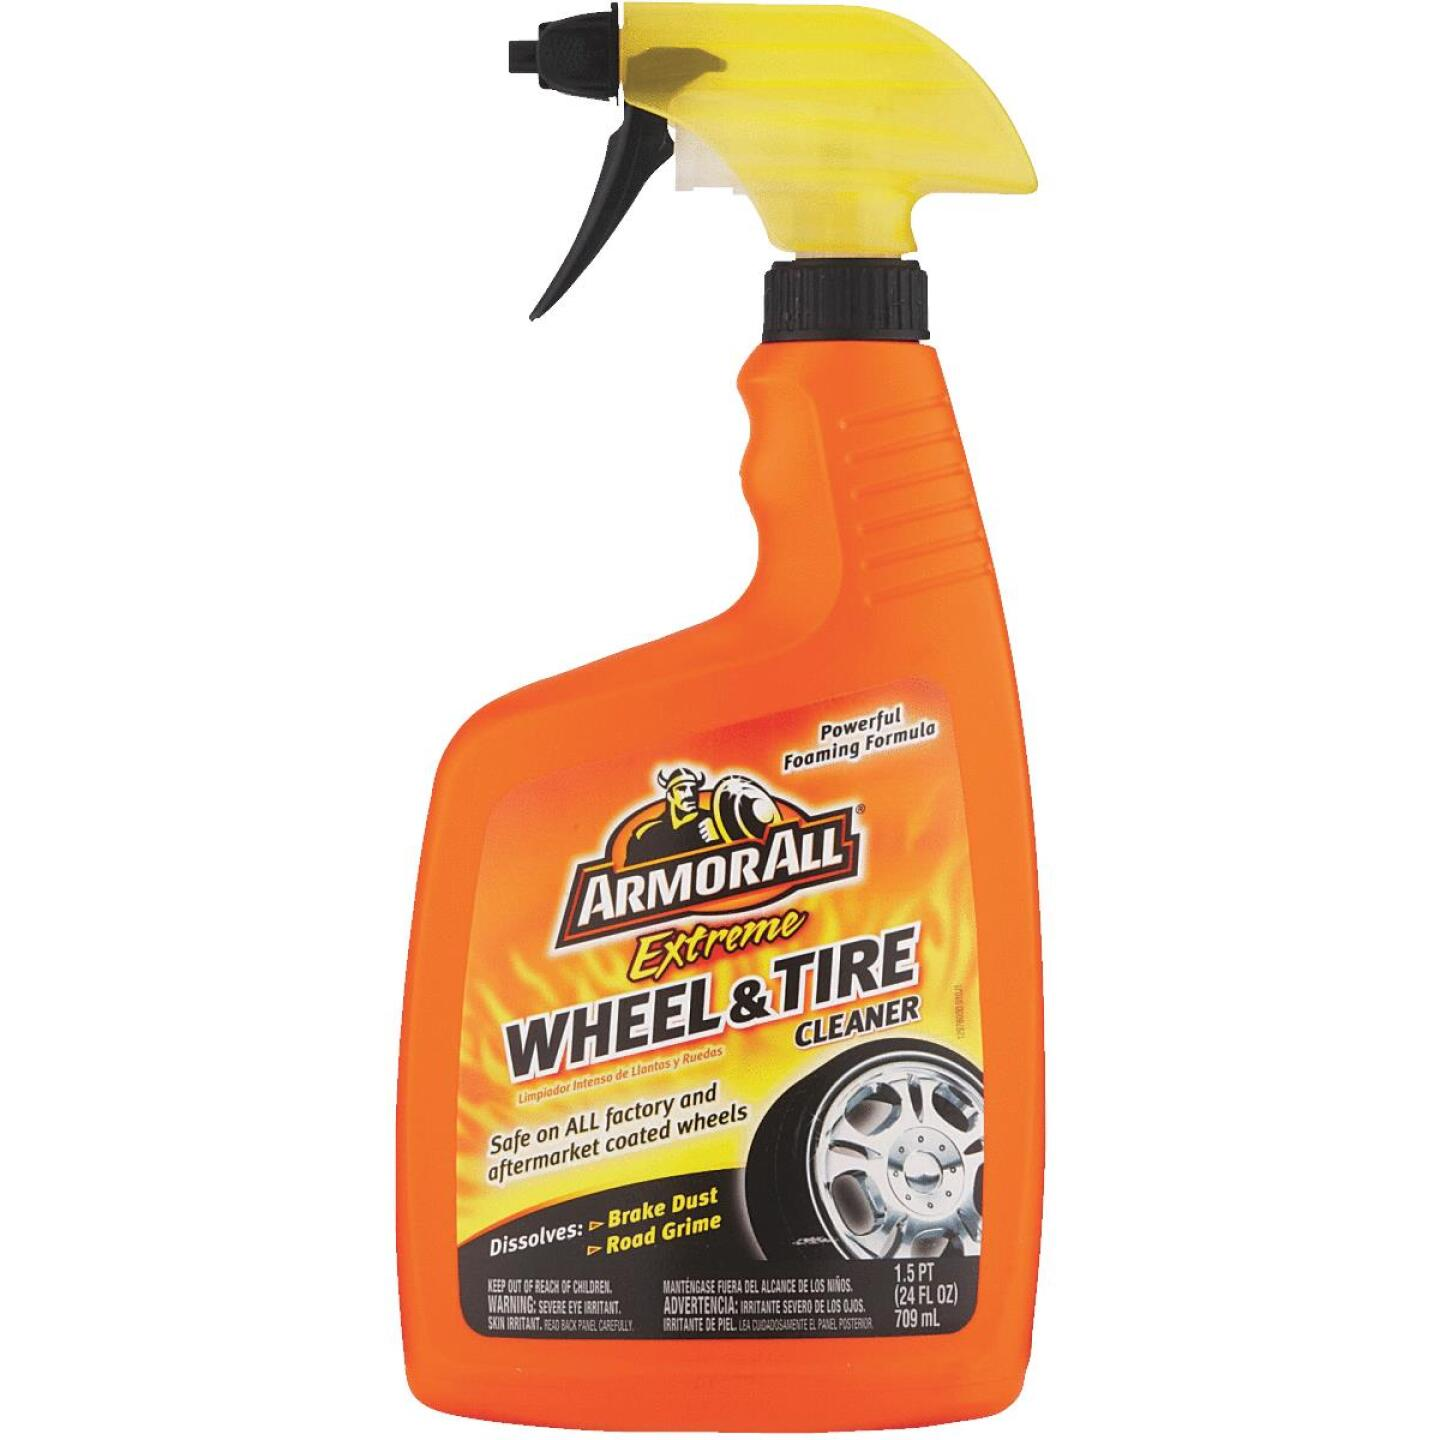 Armor All 24 oz Trigger Spray Wheel Cleaner Image 1